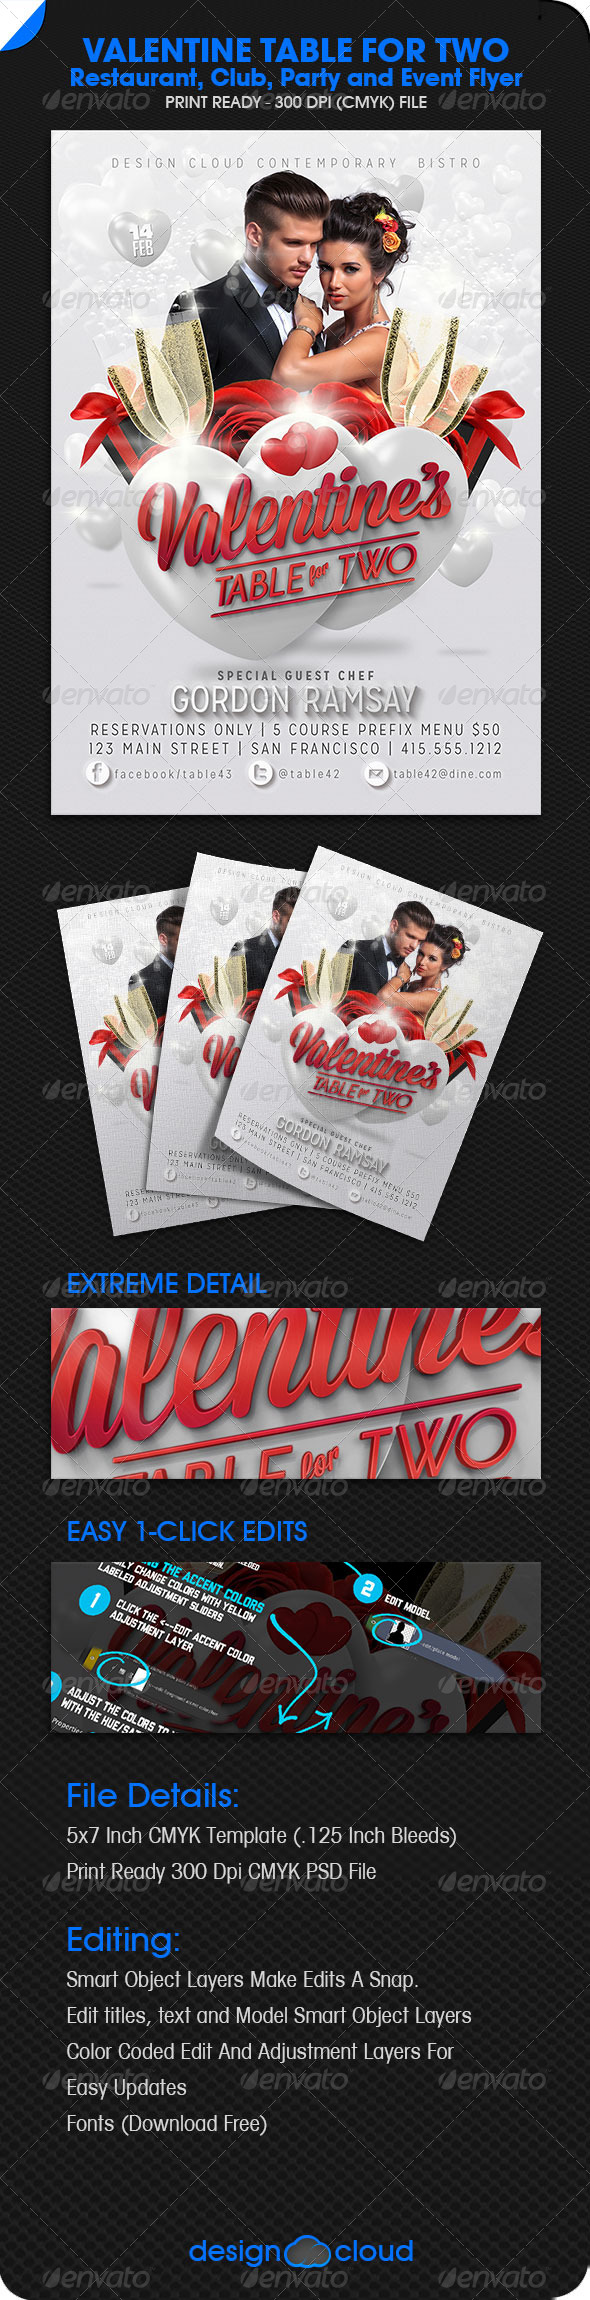 GraphicRiver Valentine Table for Two Party and Event Flyer 6503580